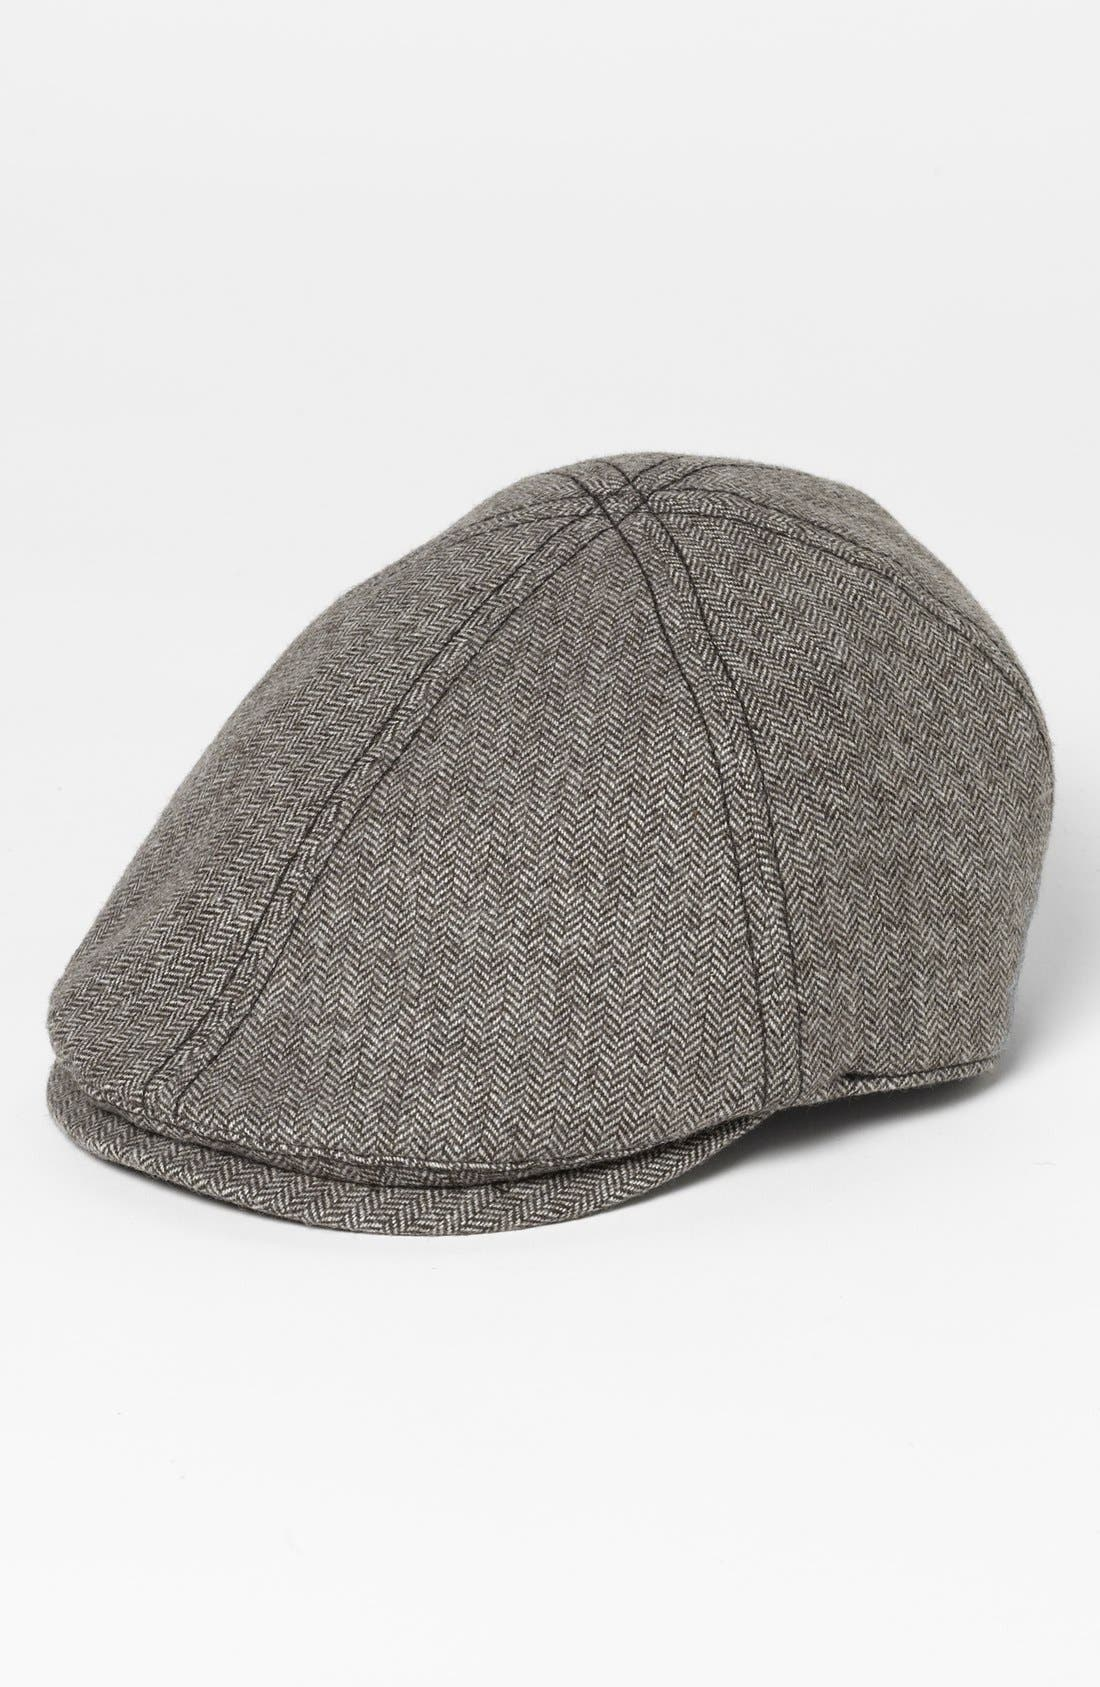 Alternate Image 1 Selected - Goorin Brothers 'John Milton' Wool Driving Cap